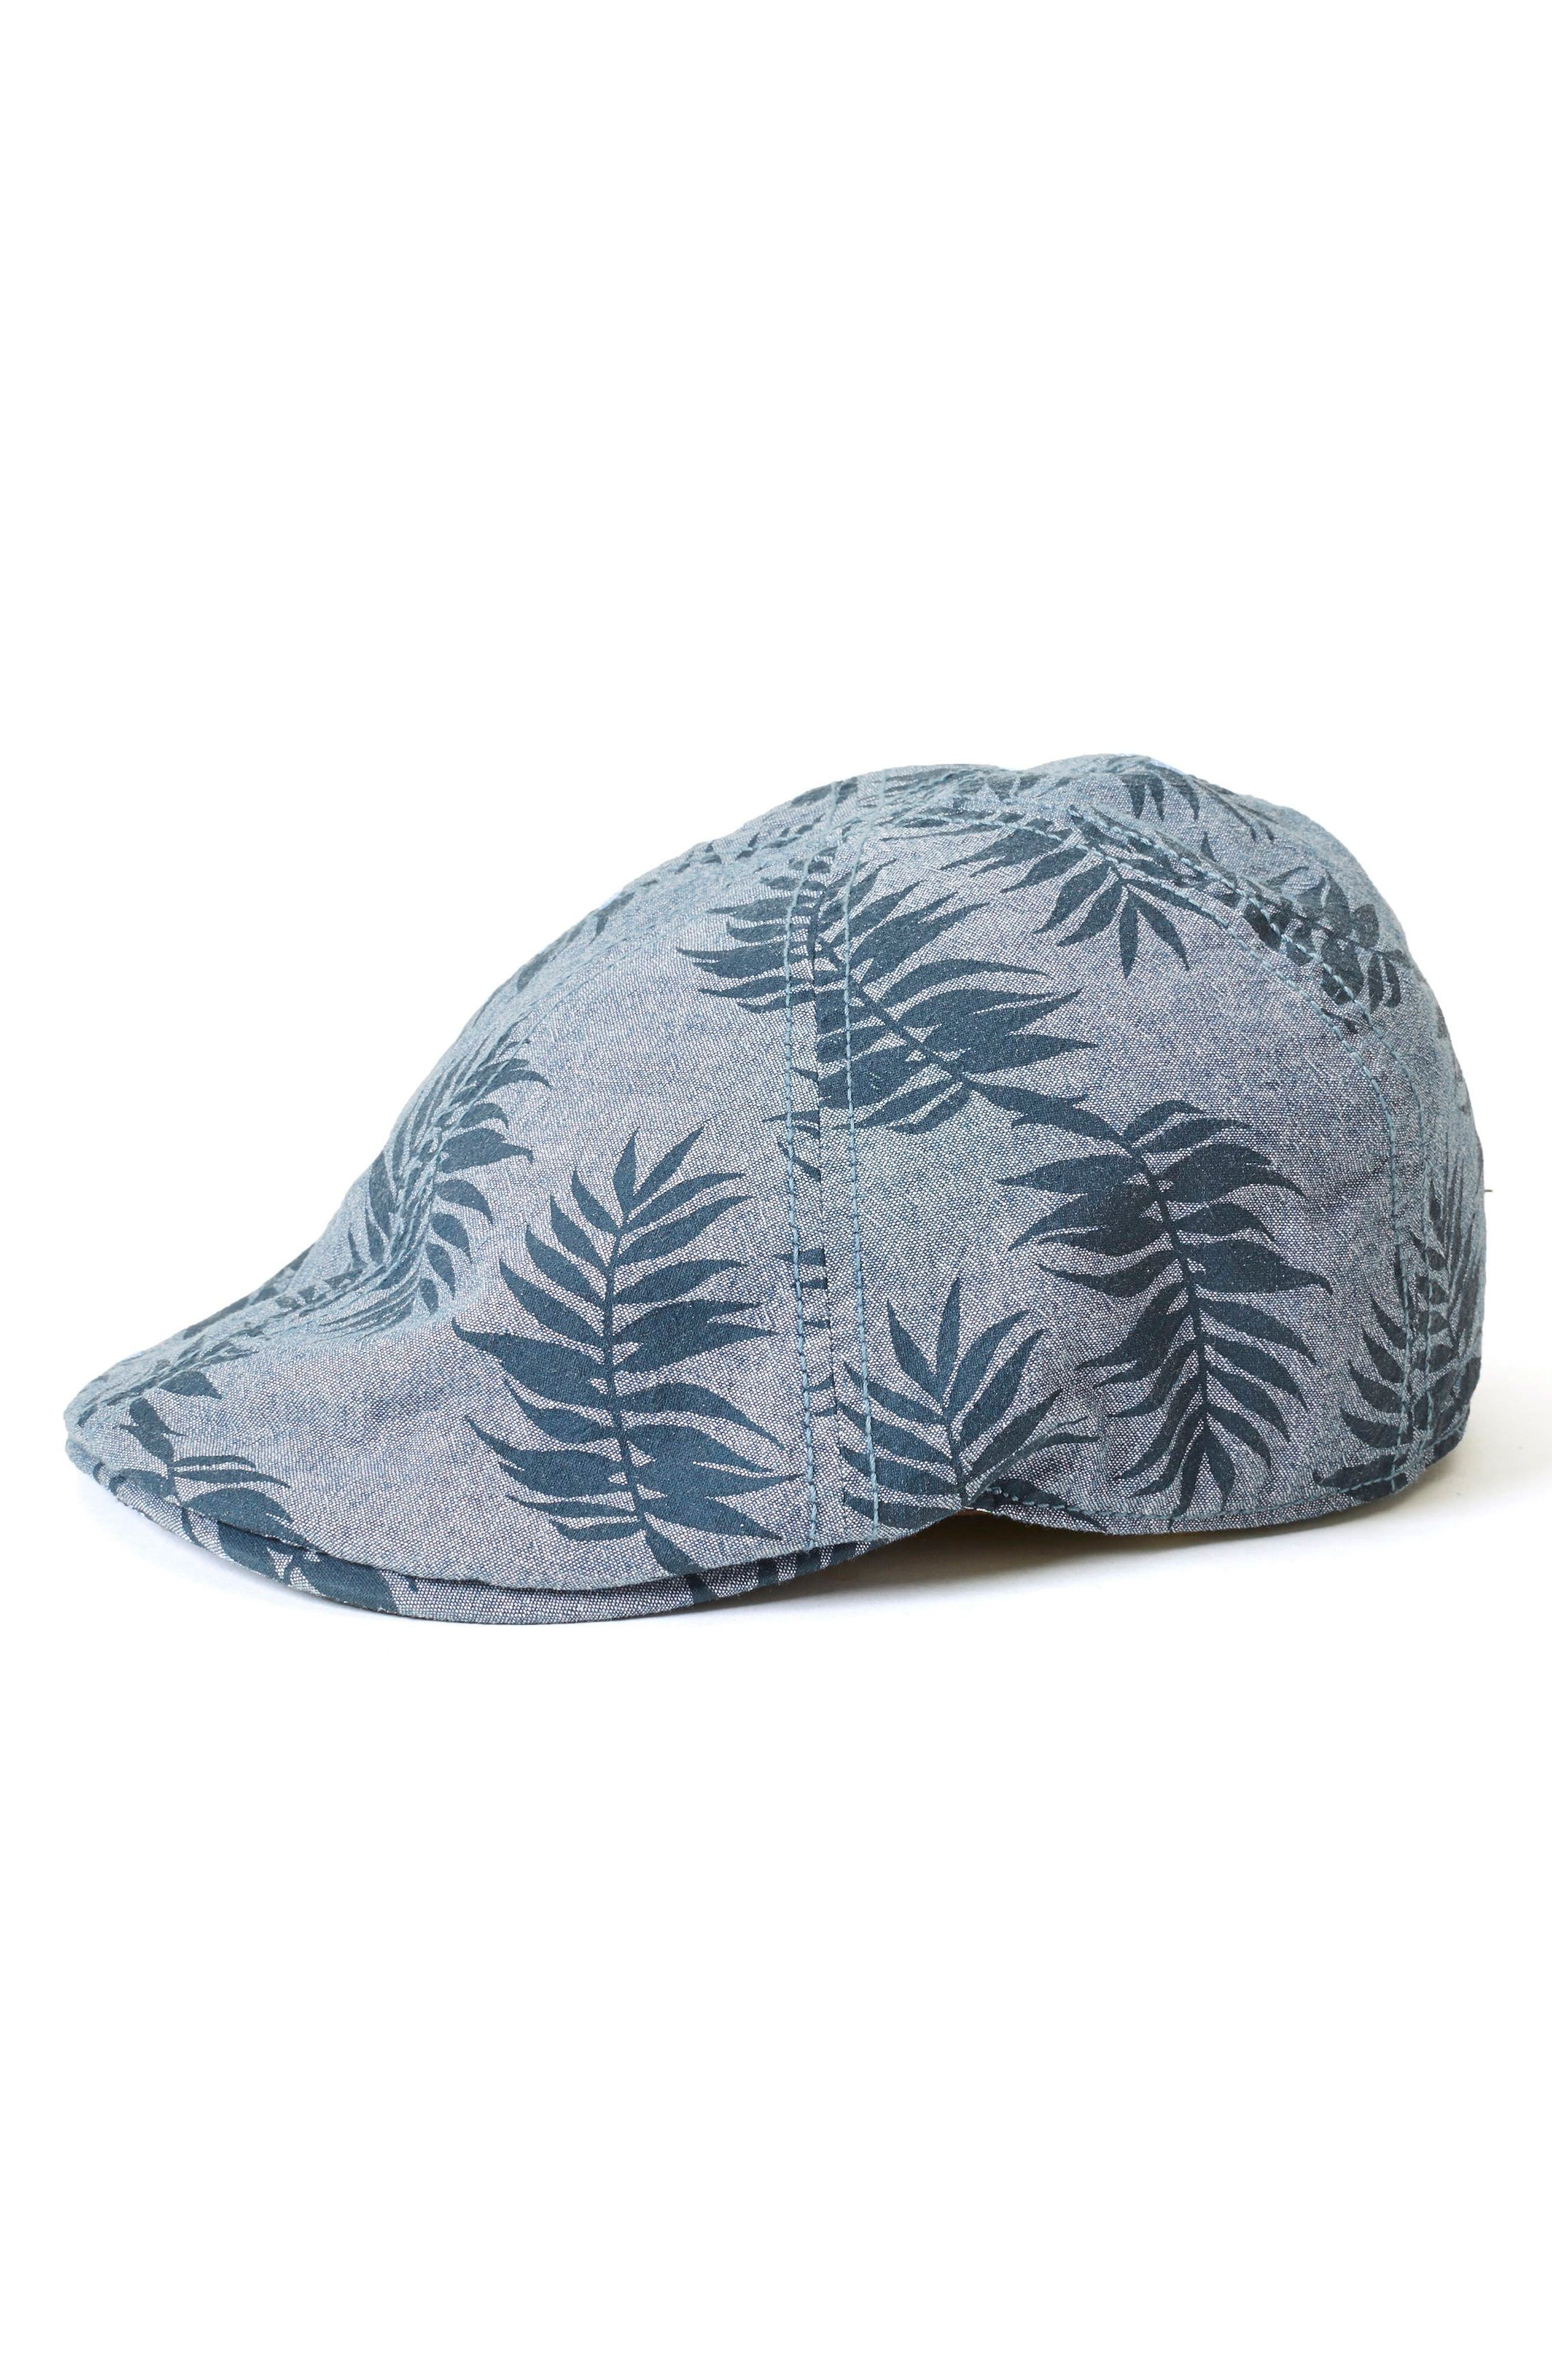 Main Image - Goorin Brothers Beach Please Driving Cap